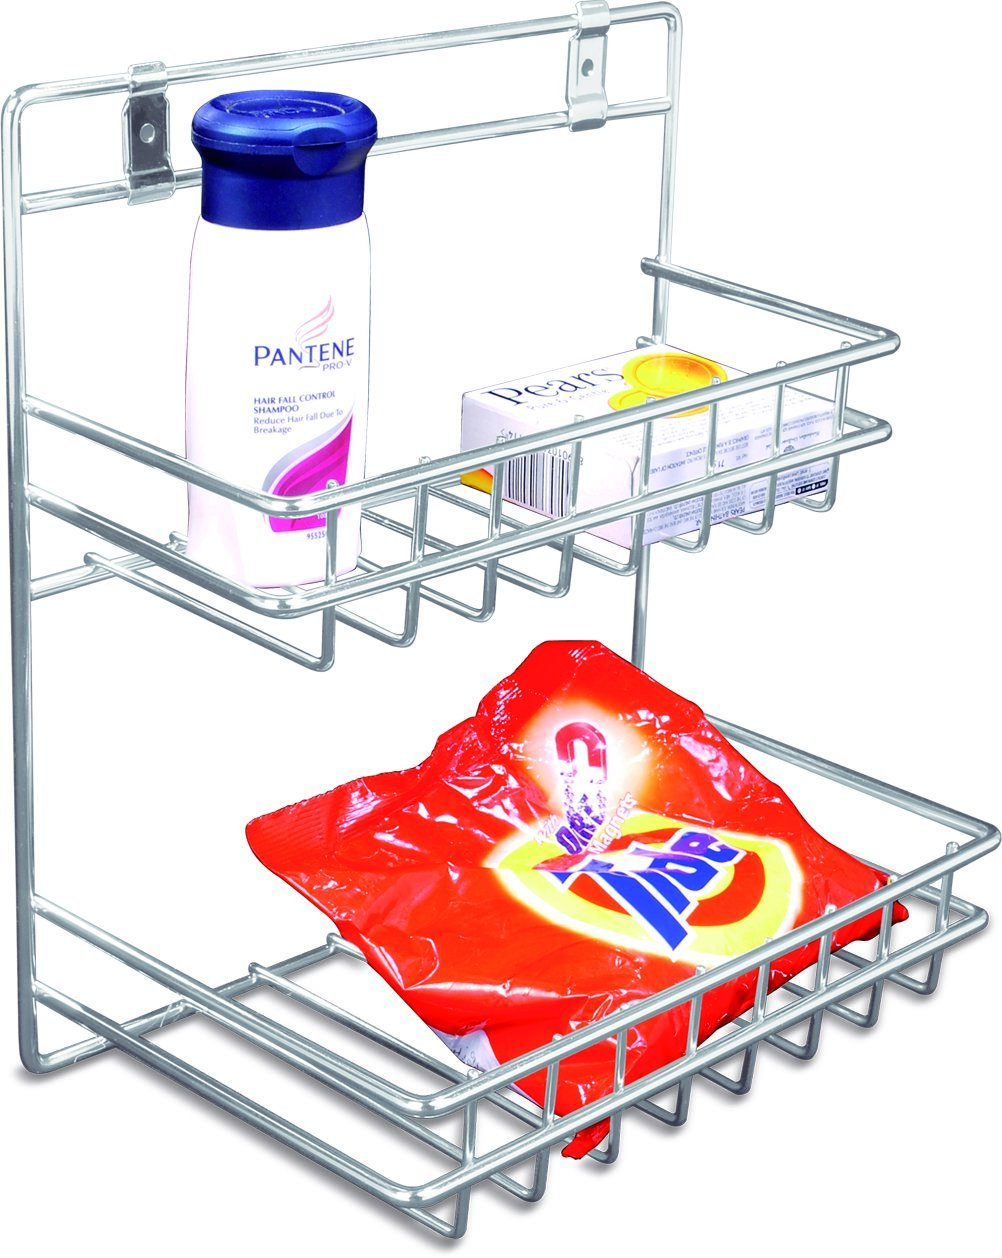 Buy Now & Ever Stainless Steel Detergent Holder, Silver Online at ...